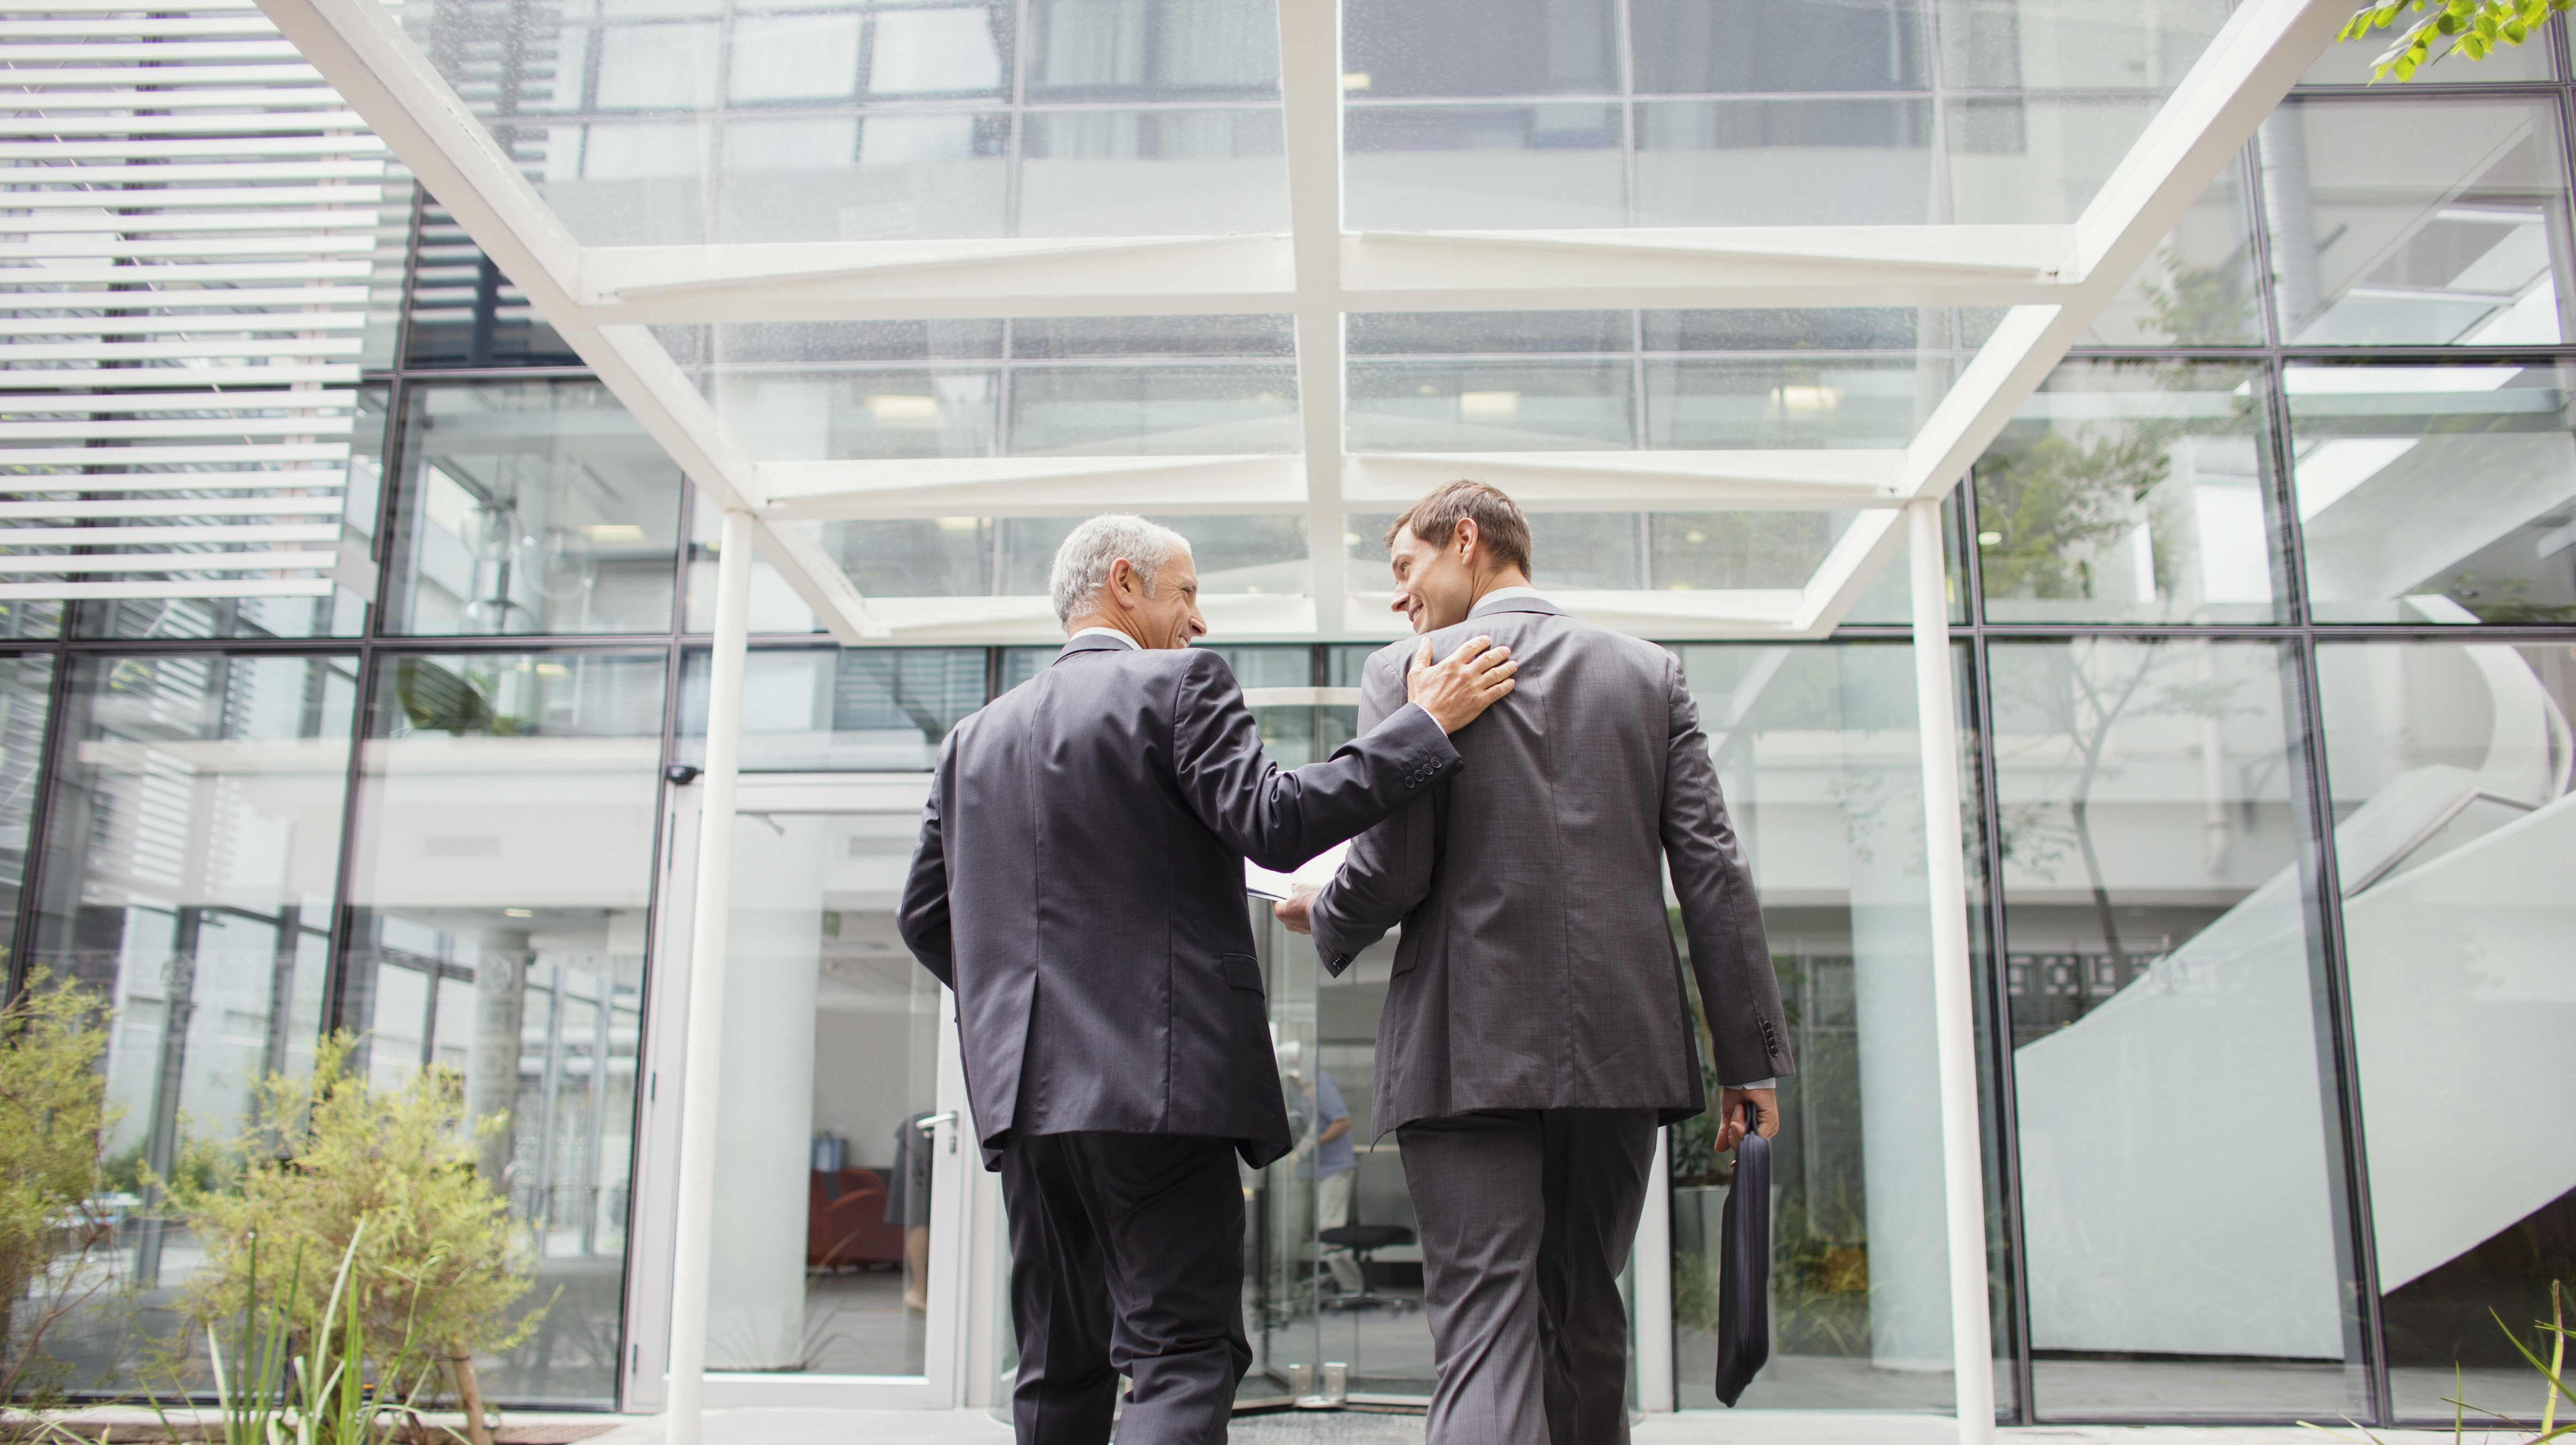 Businessmen walking into office building together